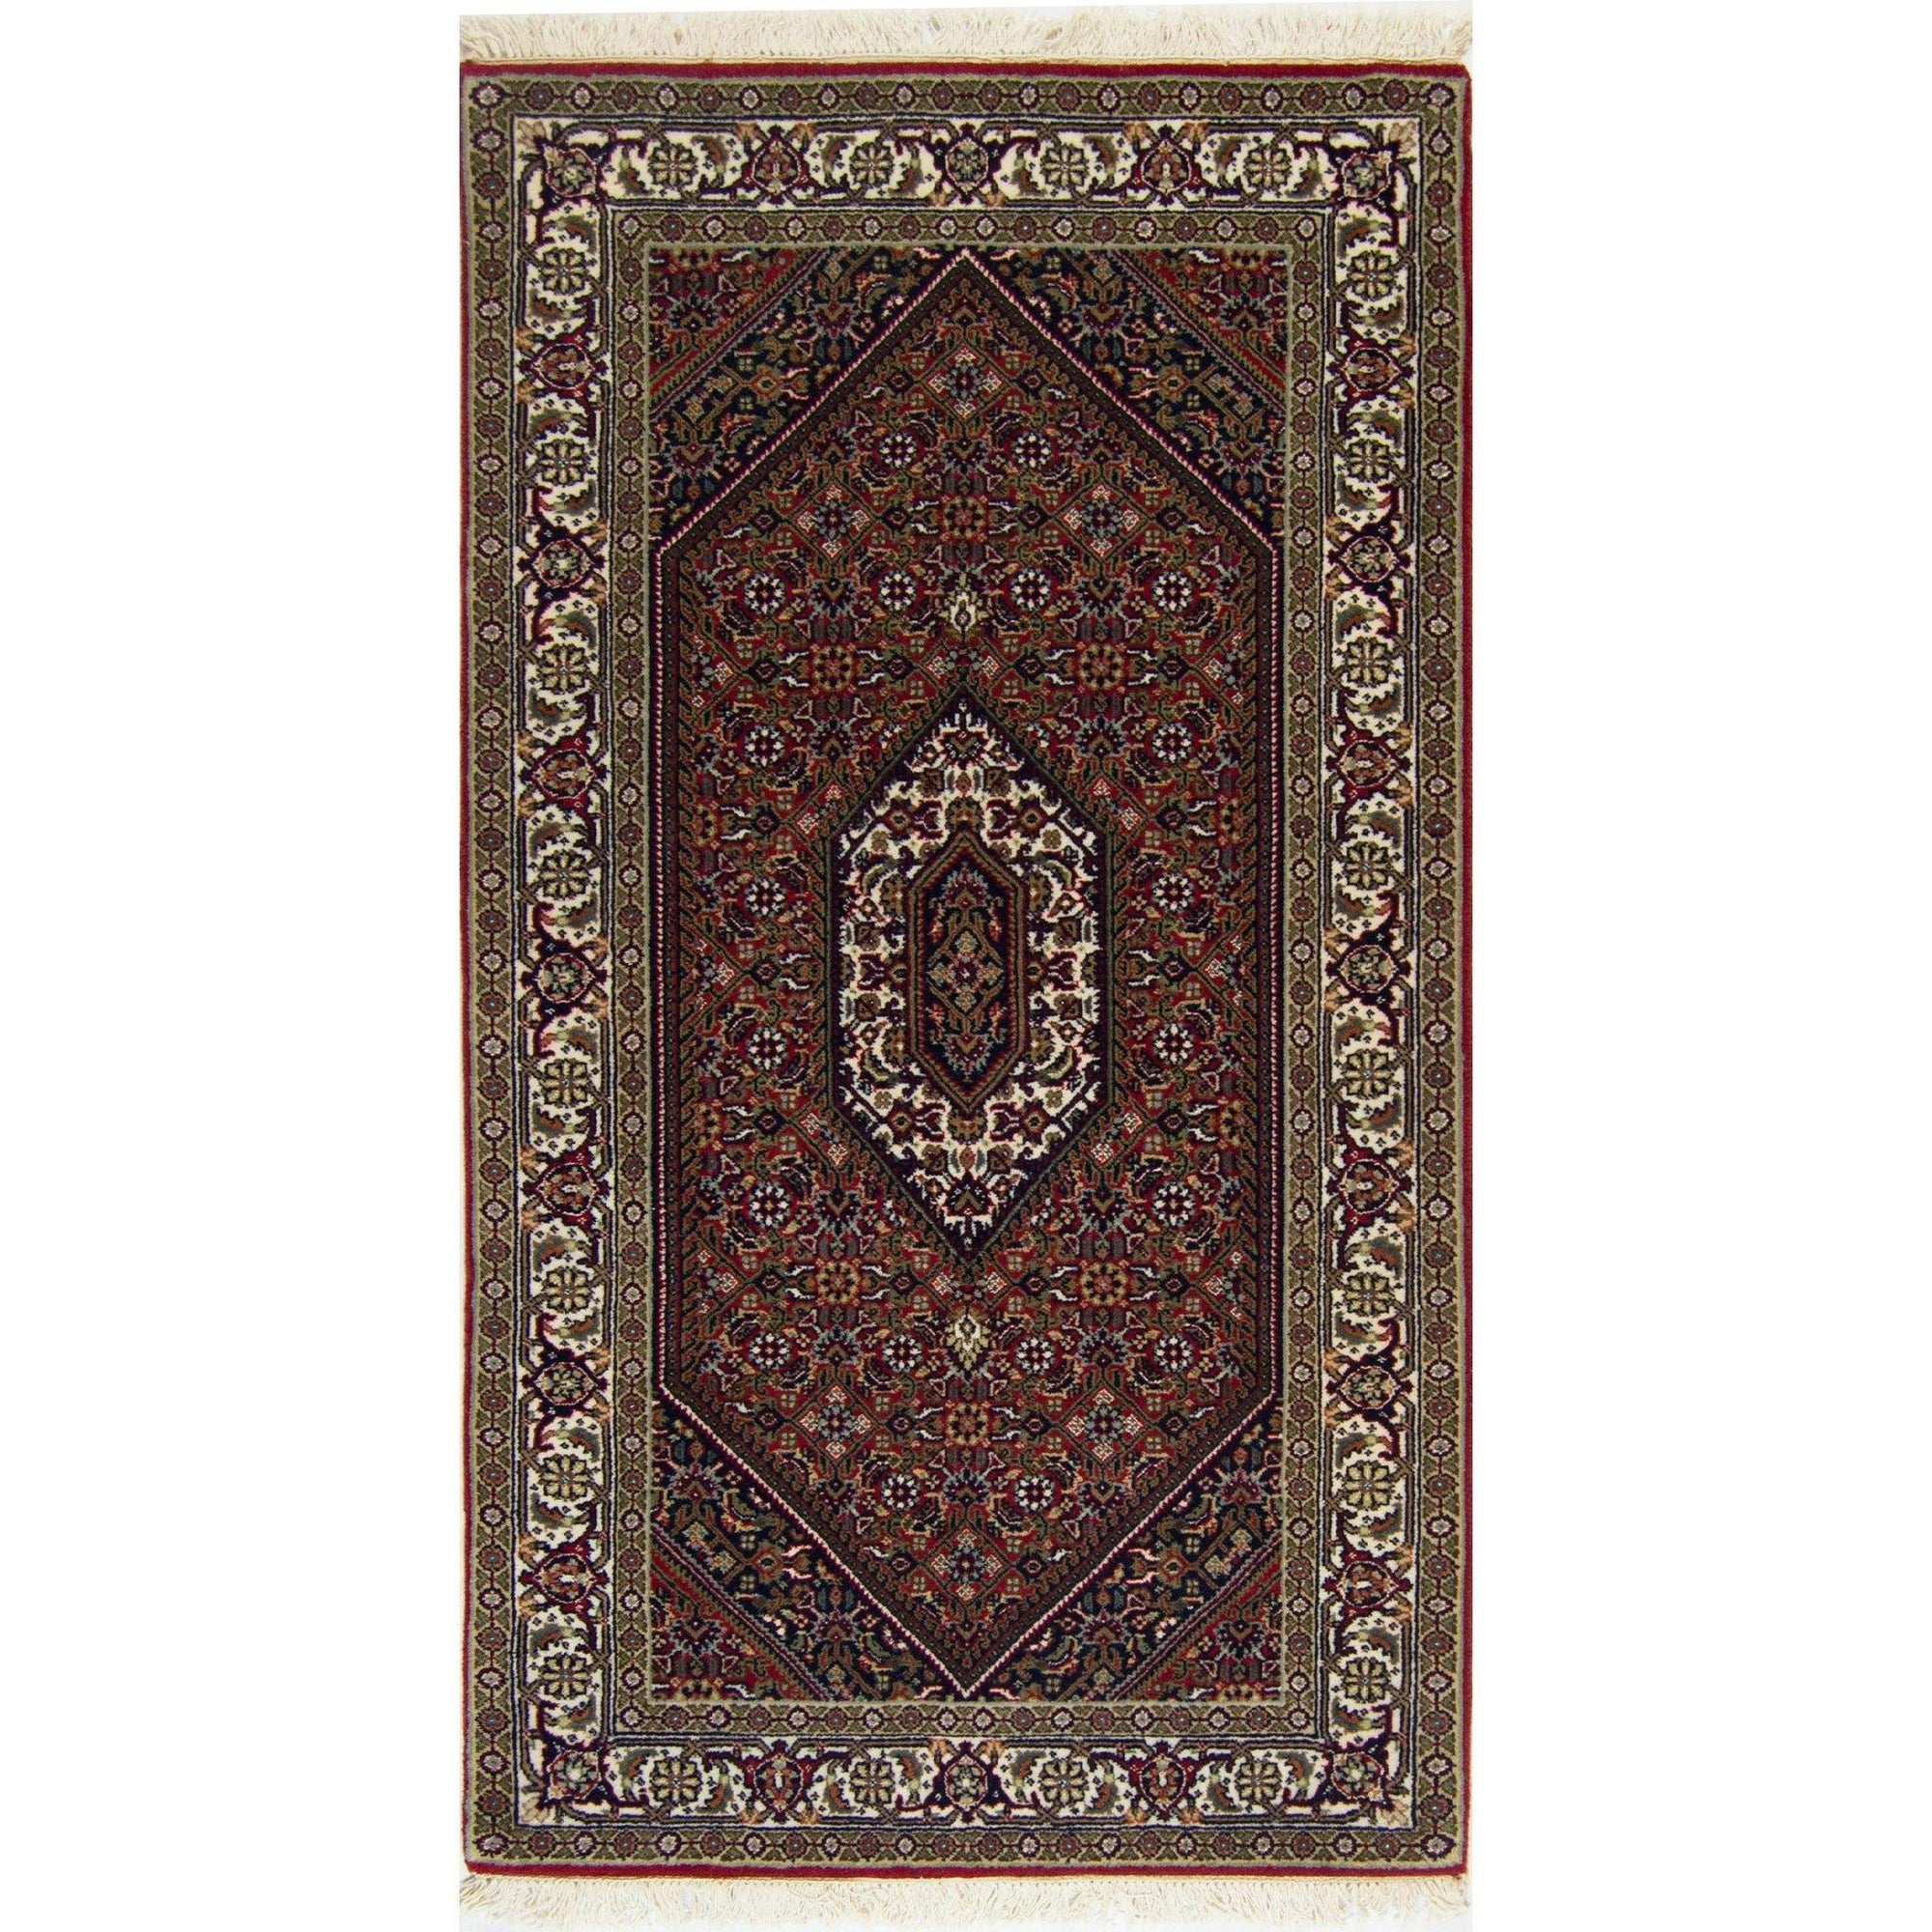 Fine Hand made Super Bijar Rug 74cm x 142cm Persian-Rug | House-of-Haghi | NewMarket | Auckland | NZ | Handmade Persian Rugs | Hand Knotted Persian Rugs